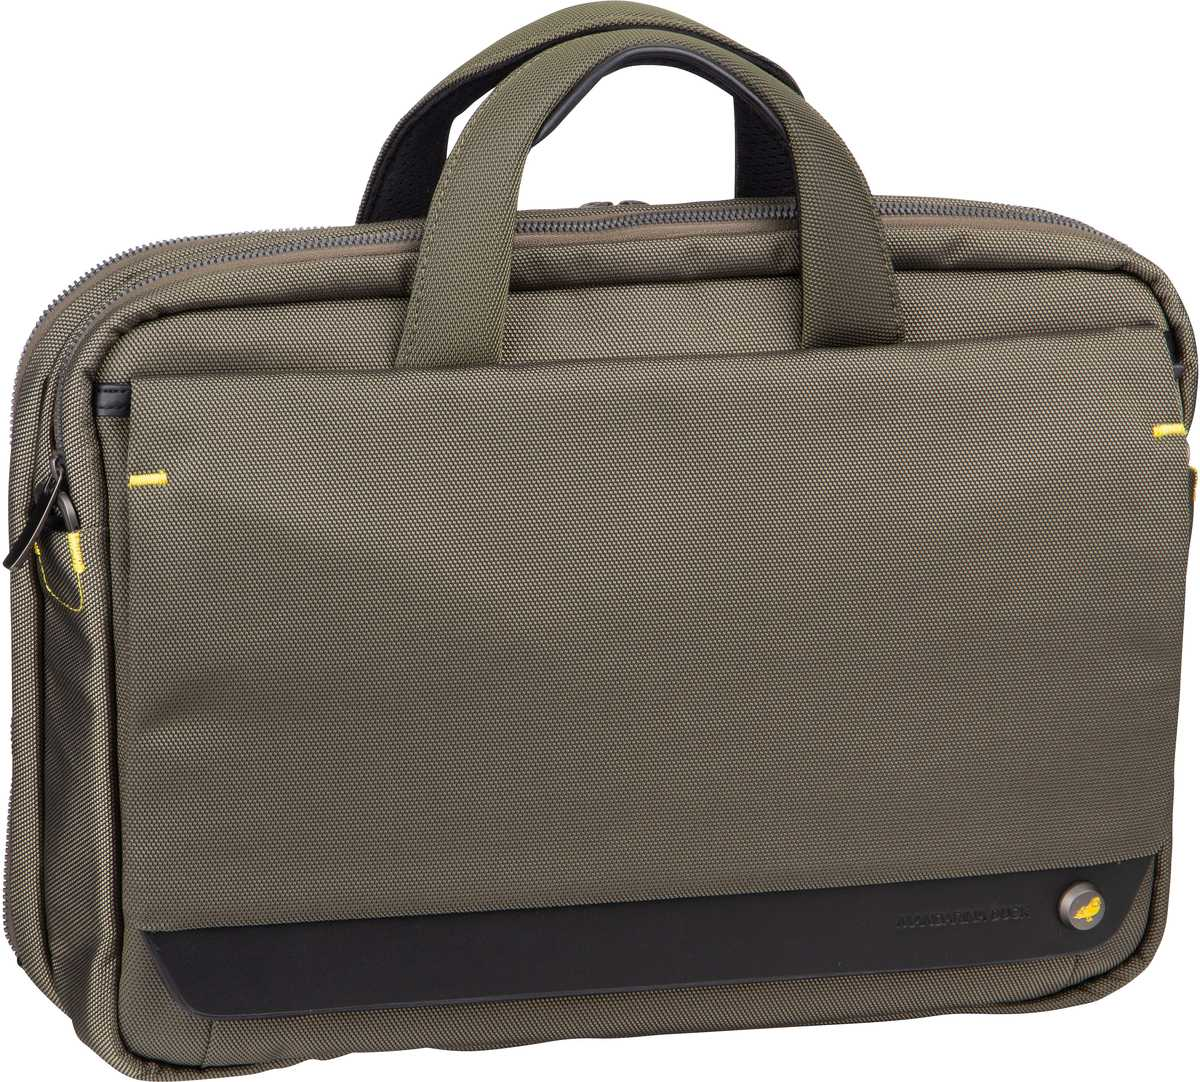 Mandarina Duck Notebooktasche / Tablet Mr. Duck Briefcase STC02 Soldier